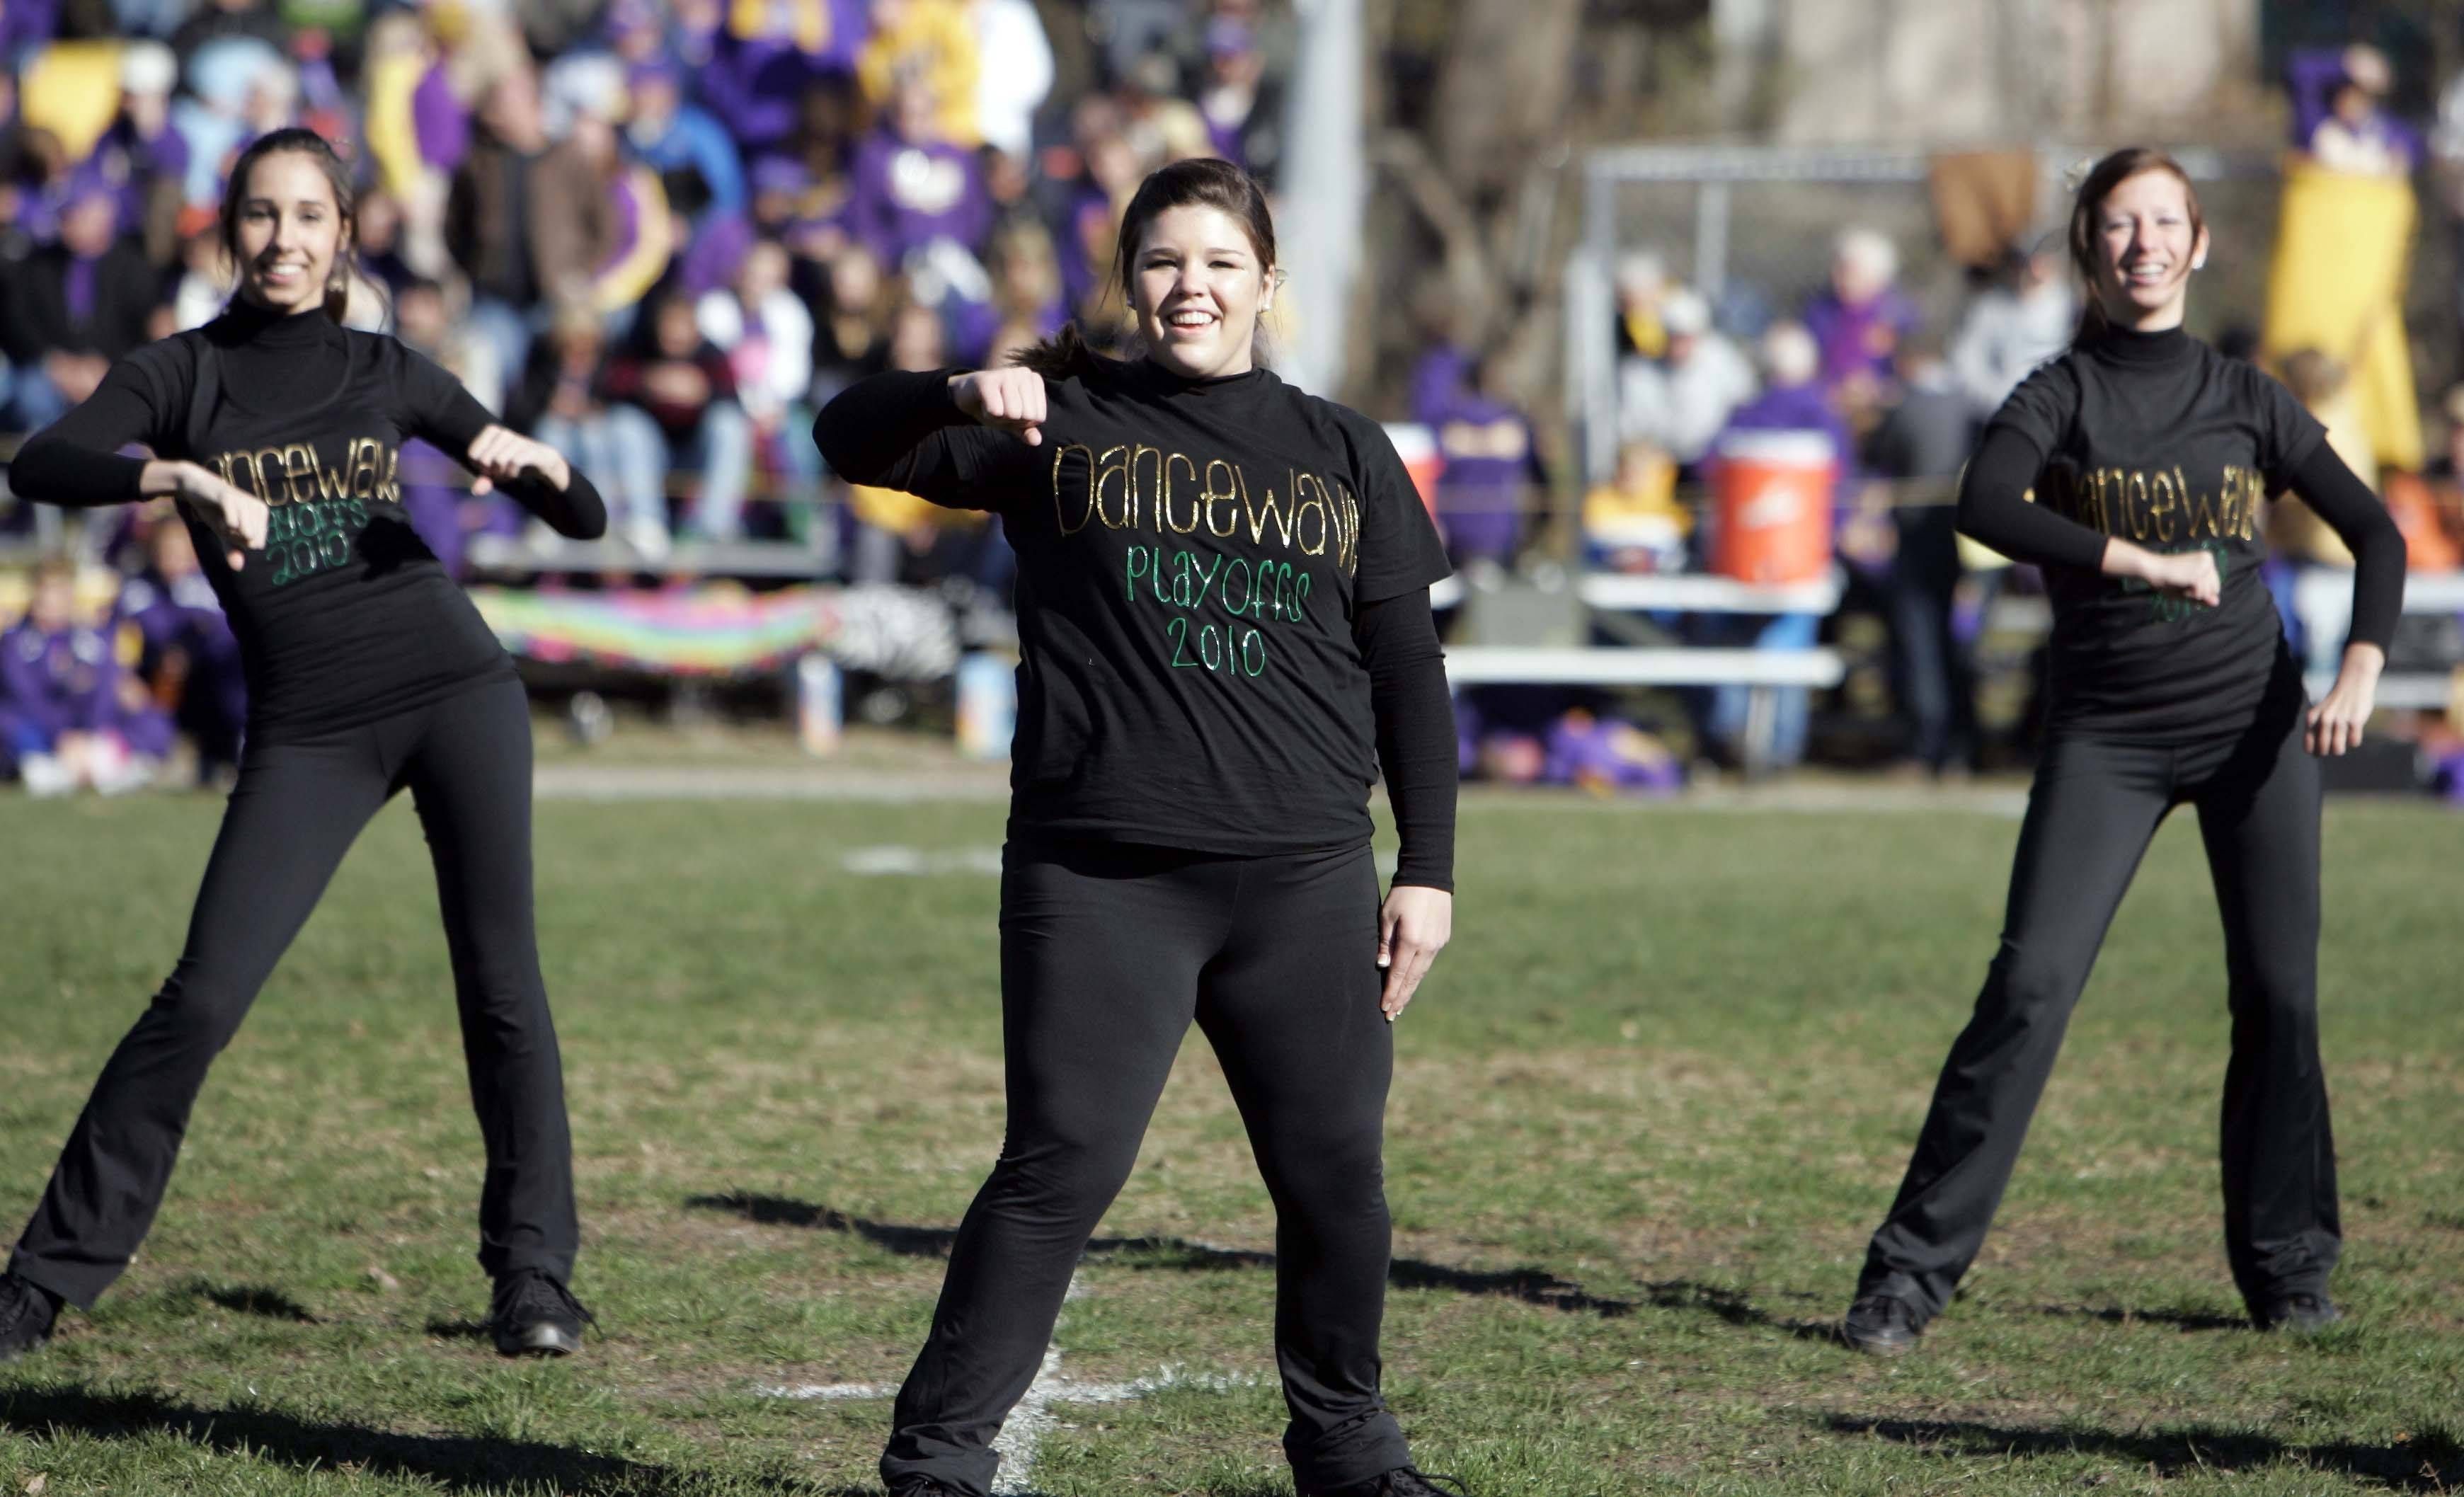 Images from Mendota at St. Edward Class 4A playoff football in Elgin Saturday, November 6, 2010.